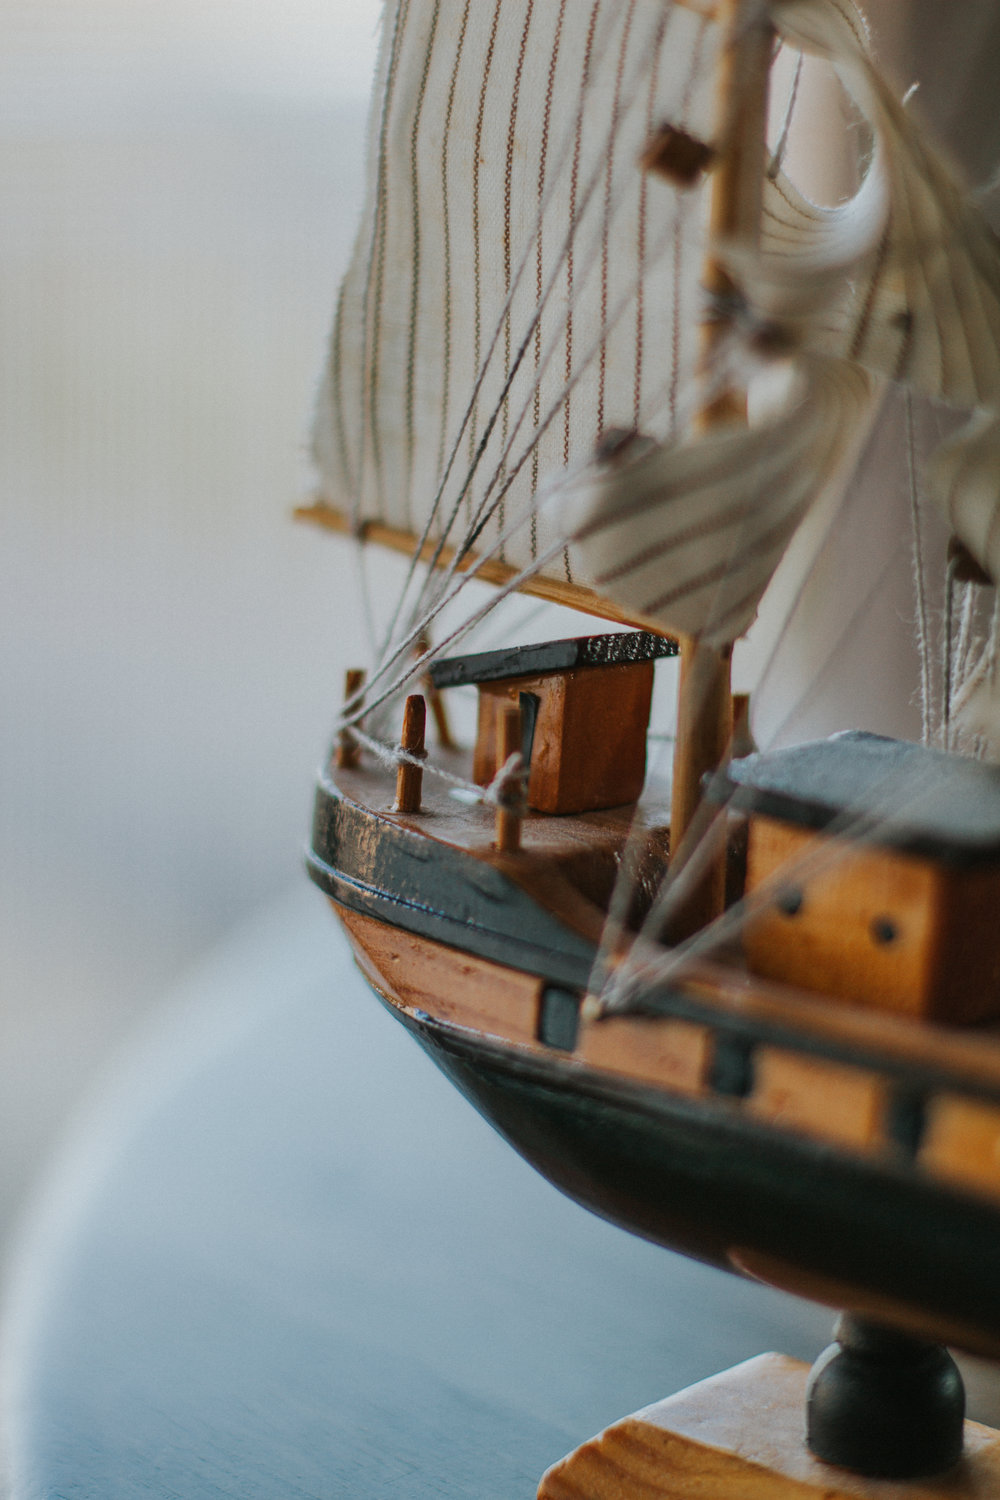 Boat Miniature Site, Miniature Boat, Bellingham WA, Elsa & Co Photography-9566.jpg